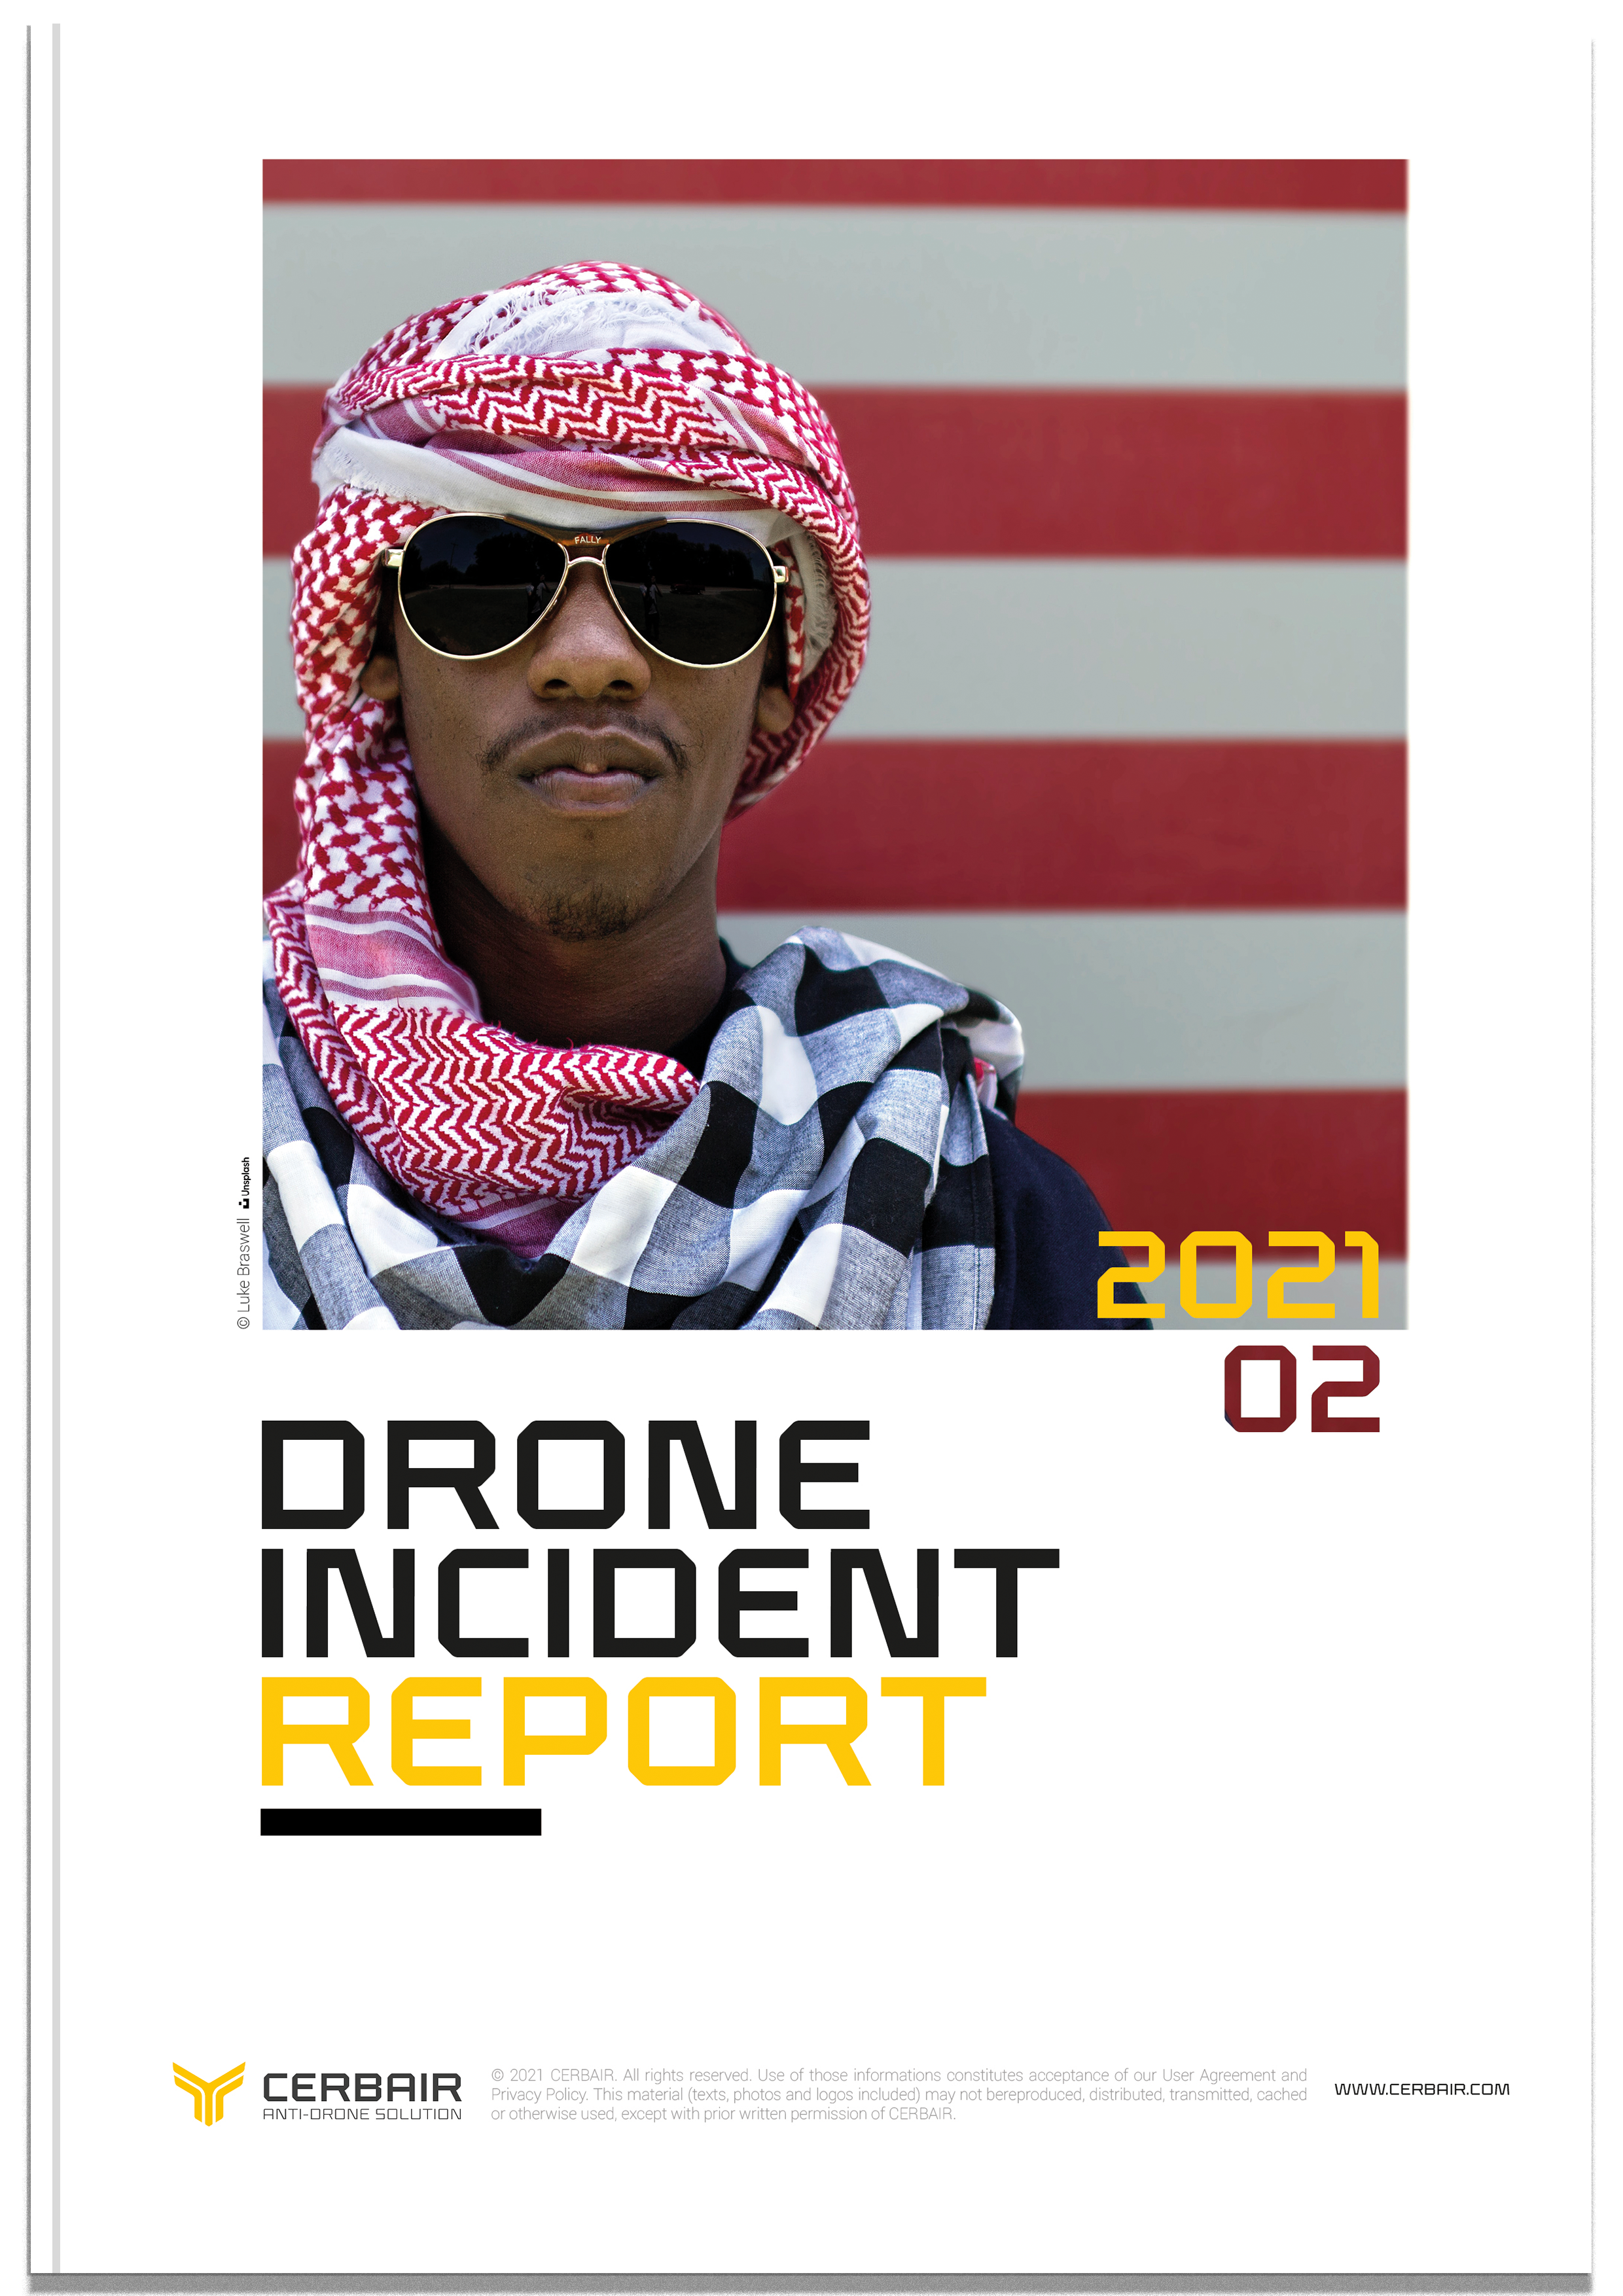 Drone Incident Report – February 2021